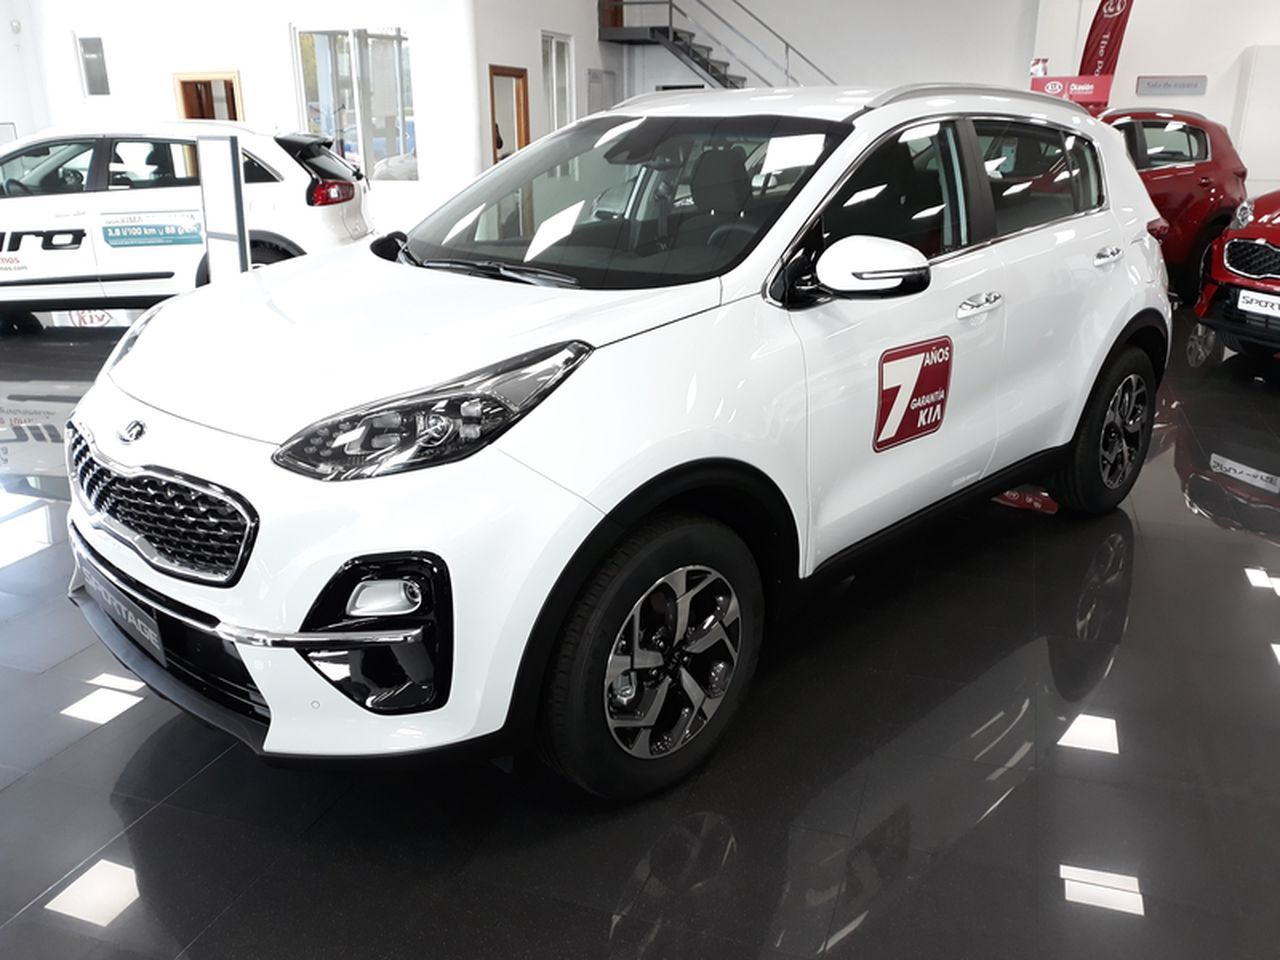 Sportage 1.6 GDi Drive (Pack Total) Gasolina 132 cv. Color Cassa White.